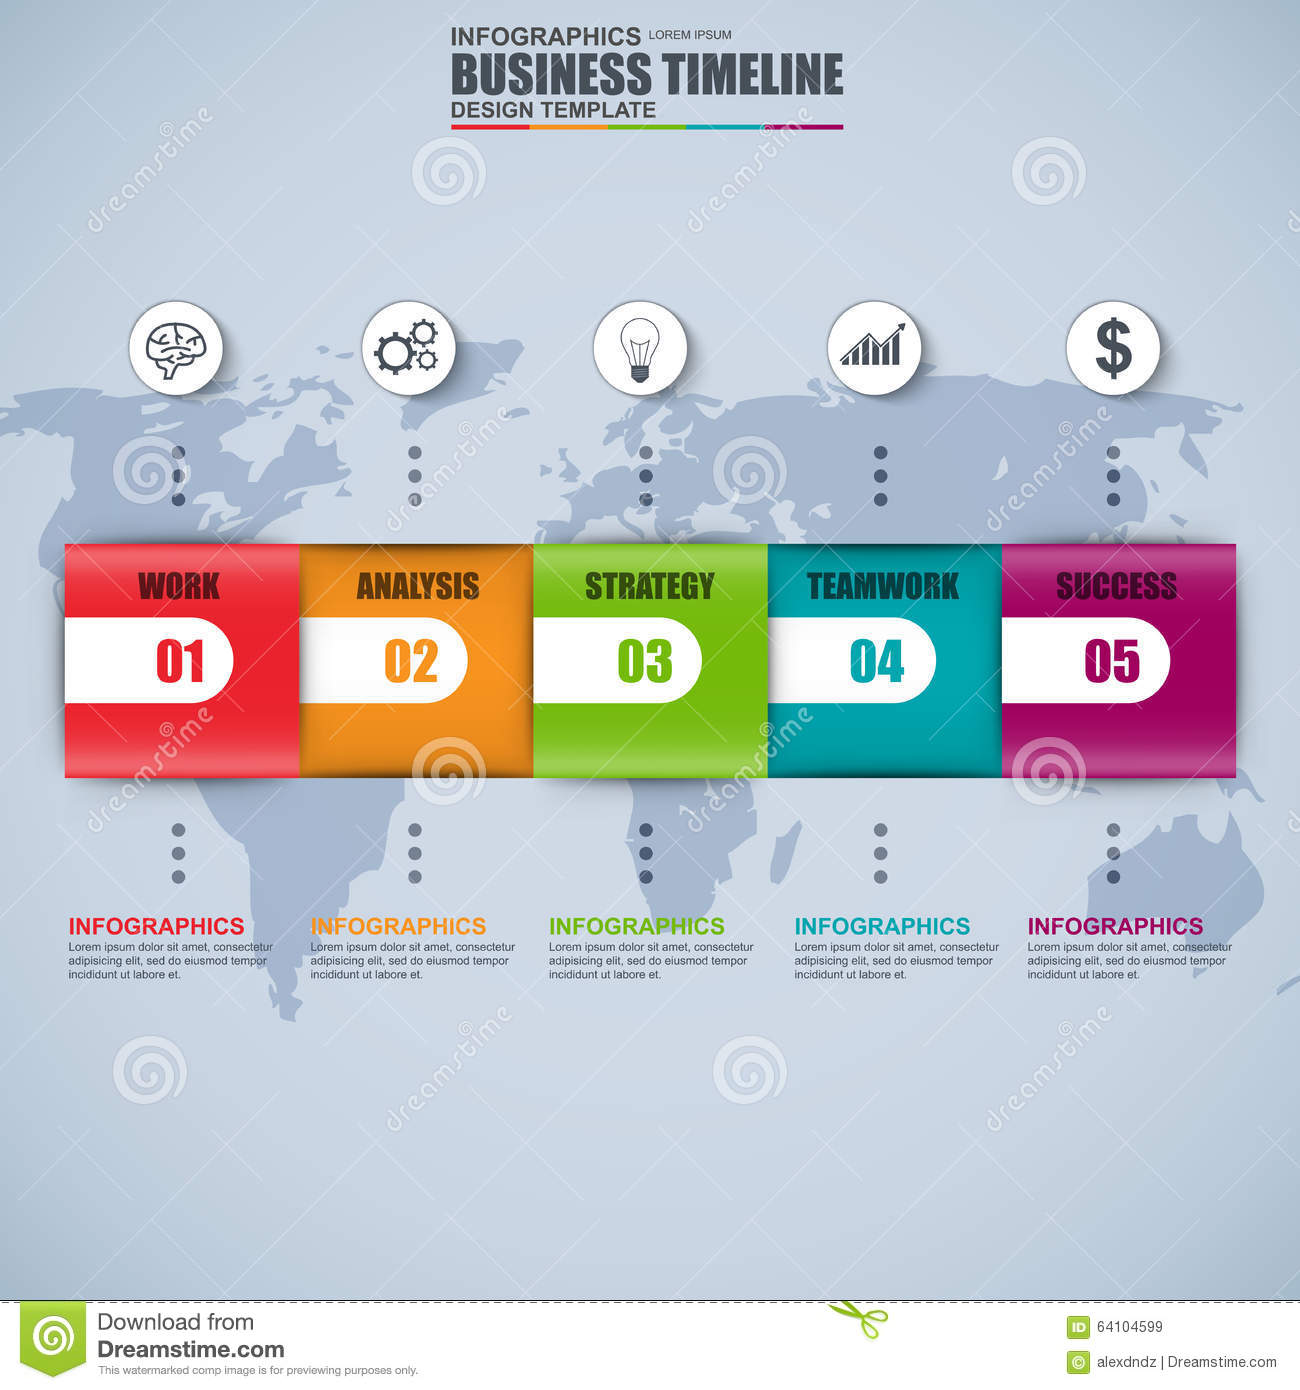 Timeline Infographic Vector Design Template Stock Process Flow Diagram With Can Be Used For Workflow Processes Banner Number Options Data Visualization Time Line Work Plan